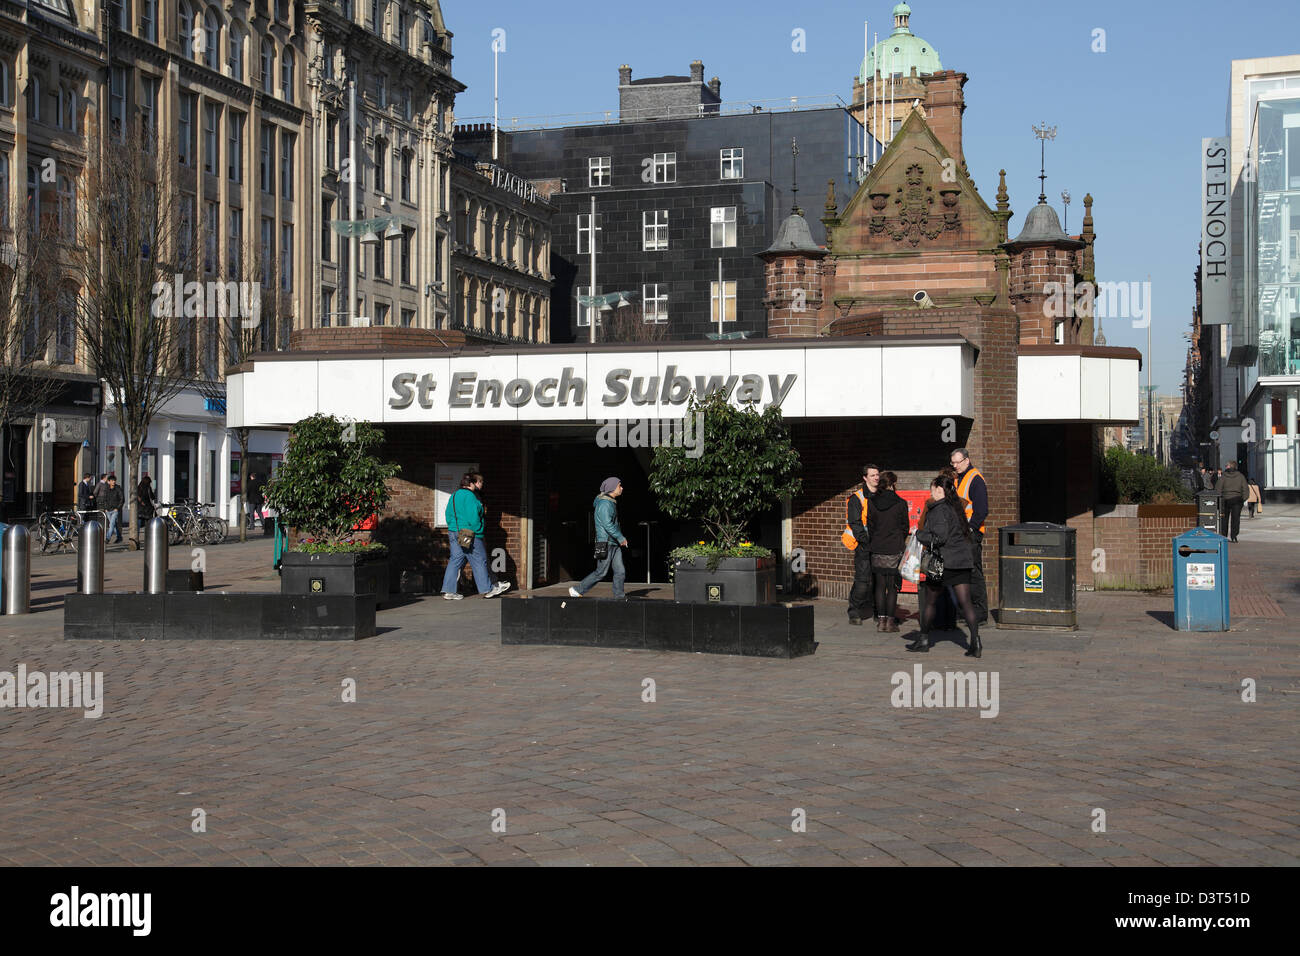 Entrance to St Enoch Subway Station in Glasgow city centre, Scotland, UK - Stock Image